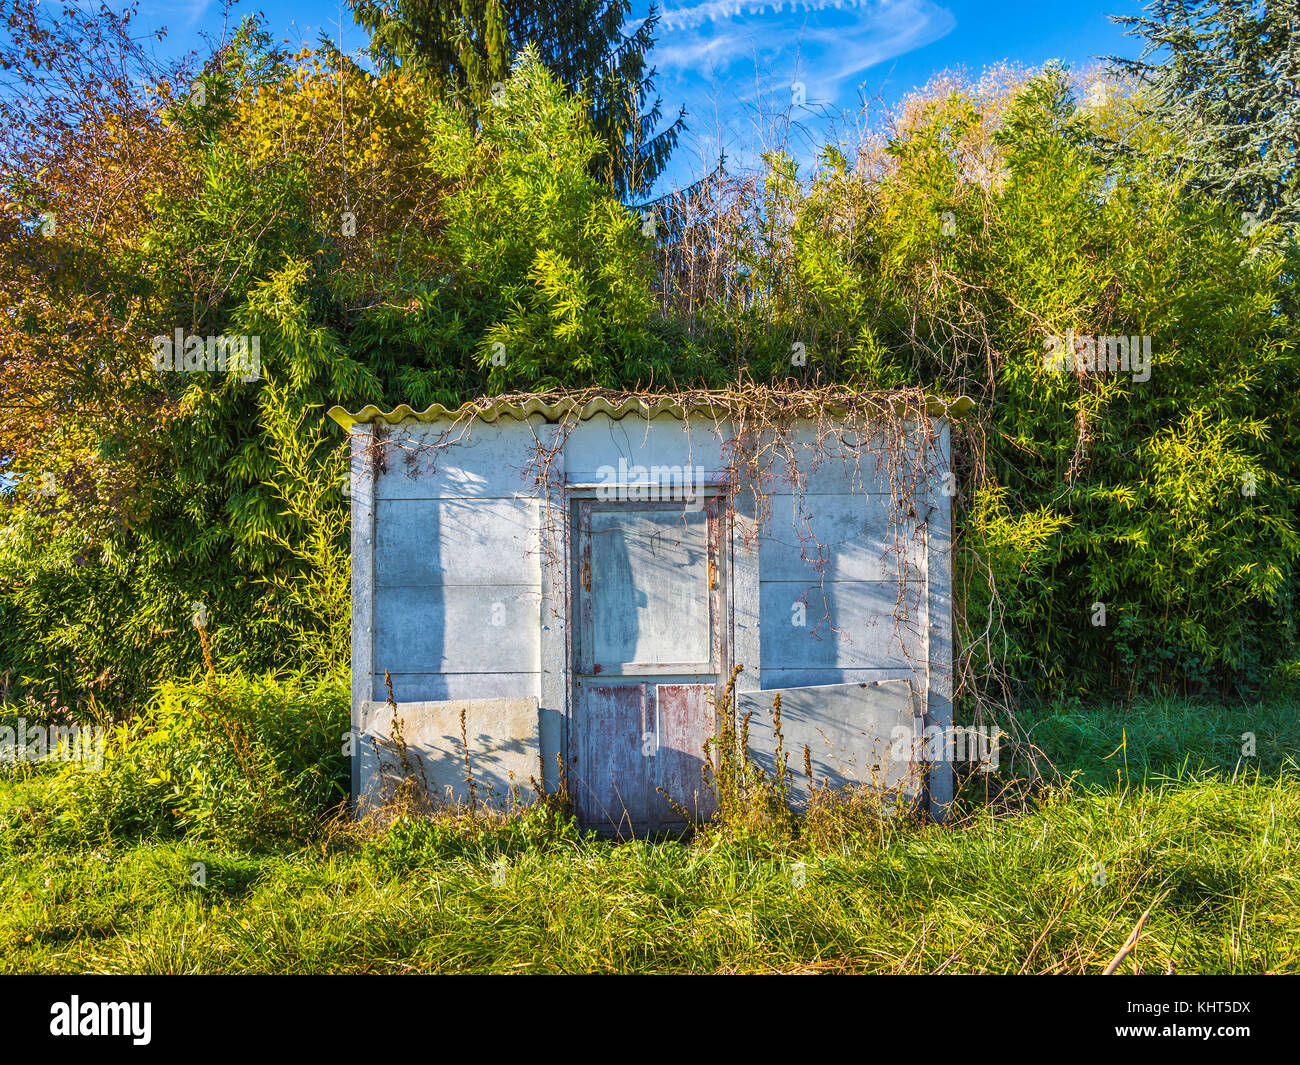 Tumbledown garden shed - France. - Stock Image